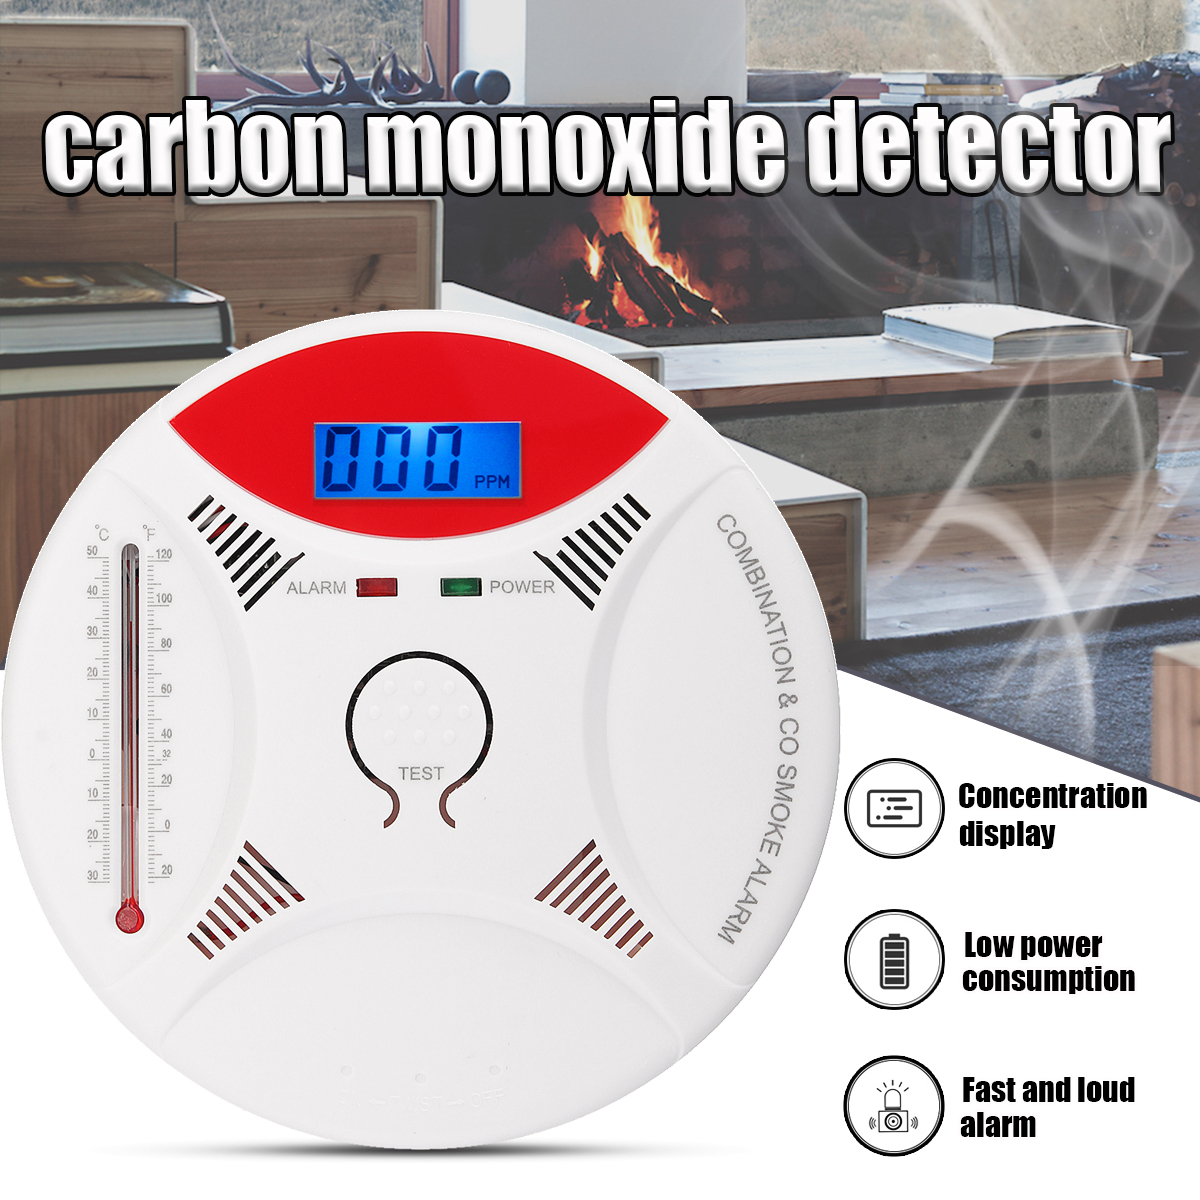 Combination Smoke and Carbon Monoxide Detector With thermometer for Home, Travel Portable Fire & Co Alarm Battery Operated with Sound Warning and Digital Display